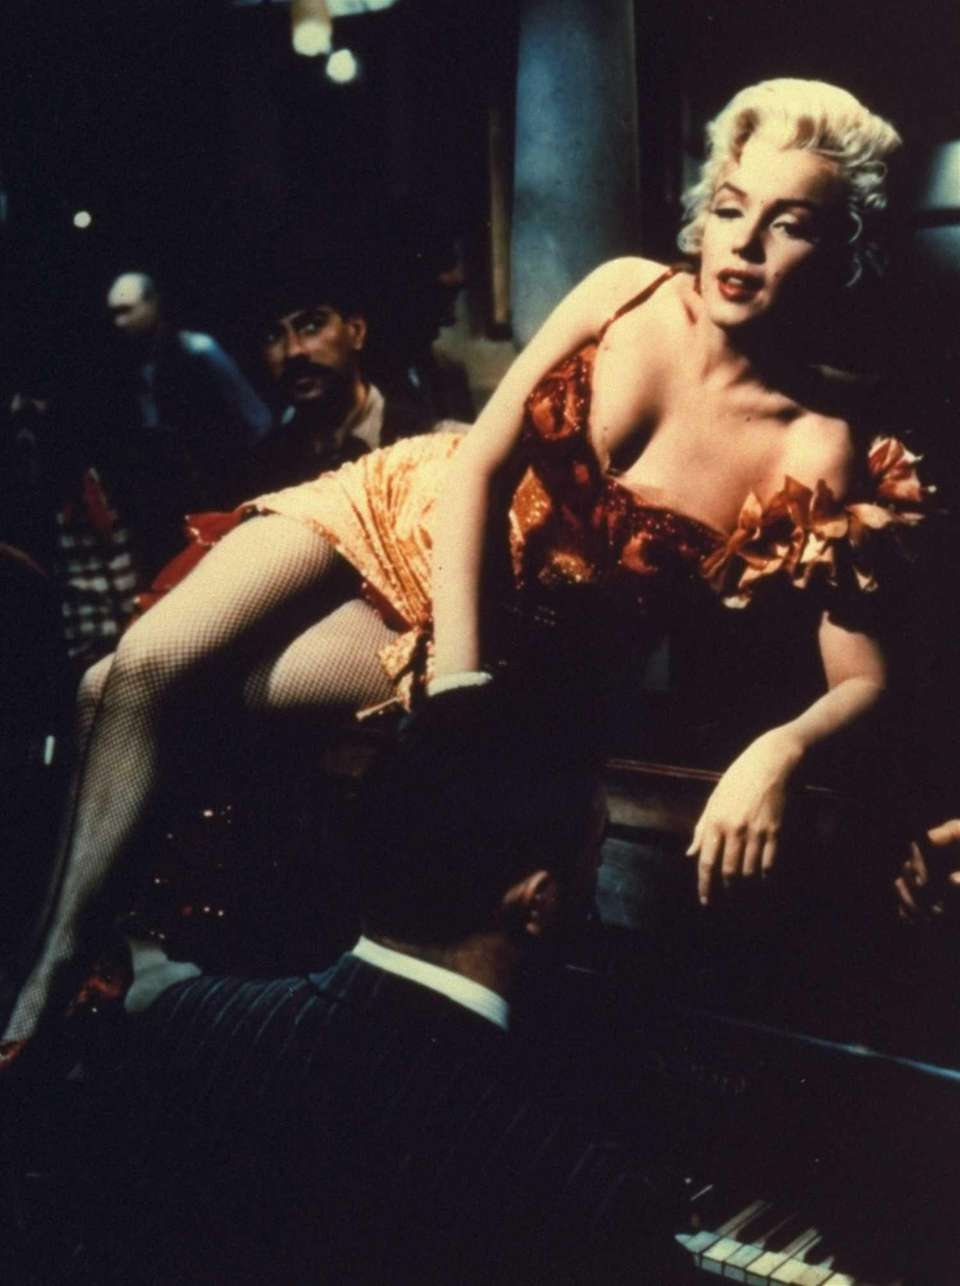 Marilyn Monroe plays a saloon entertainer in this